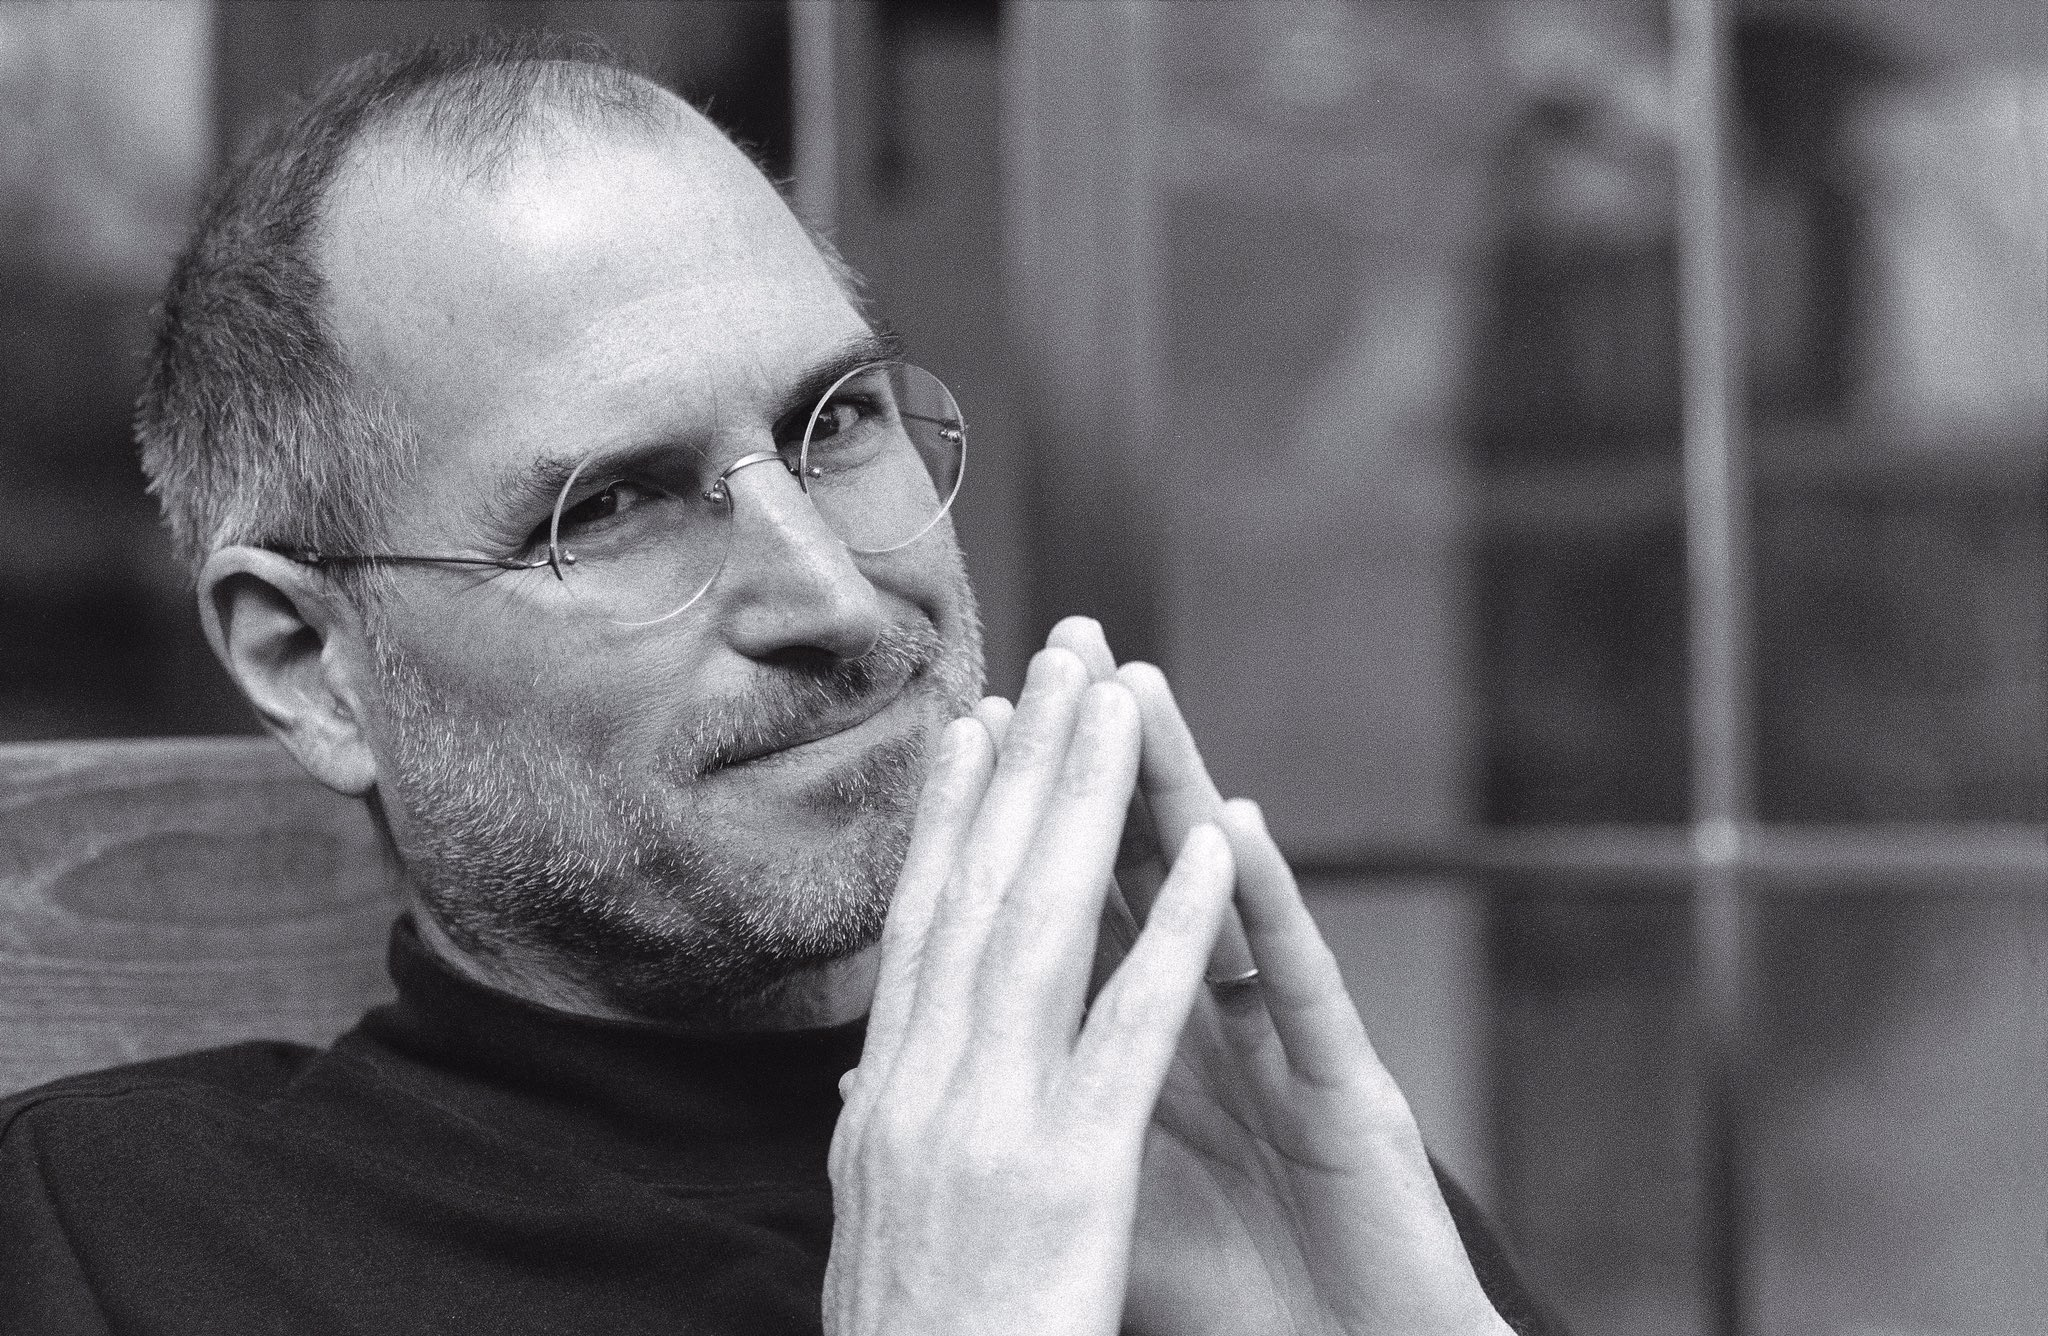 Steve Jobs headshot 001